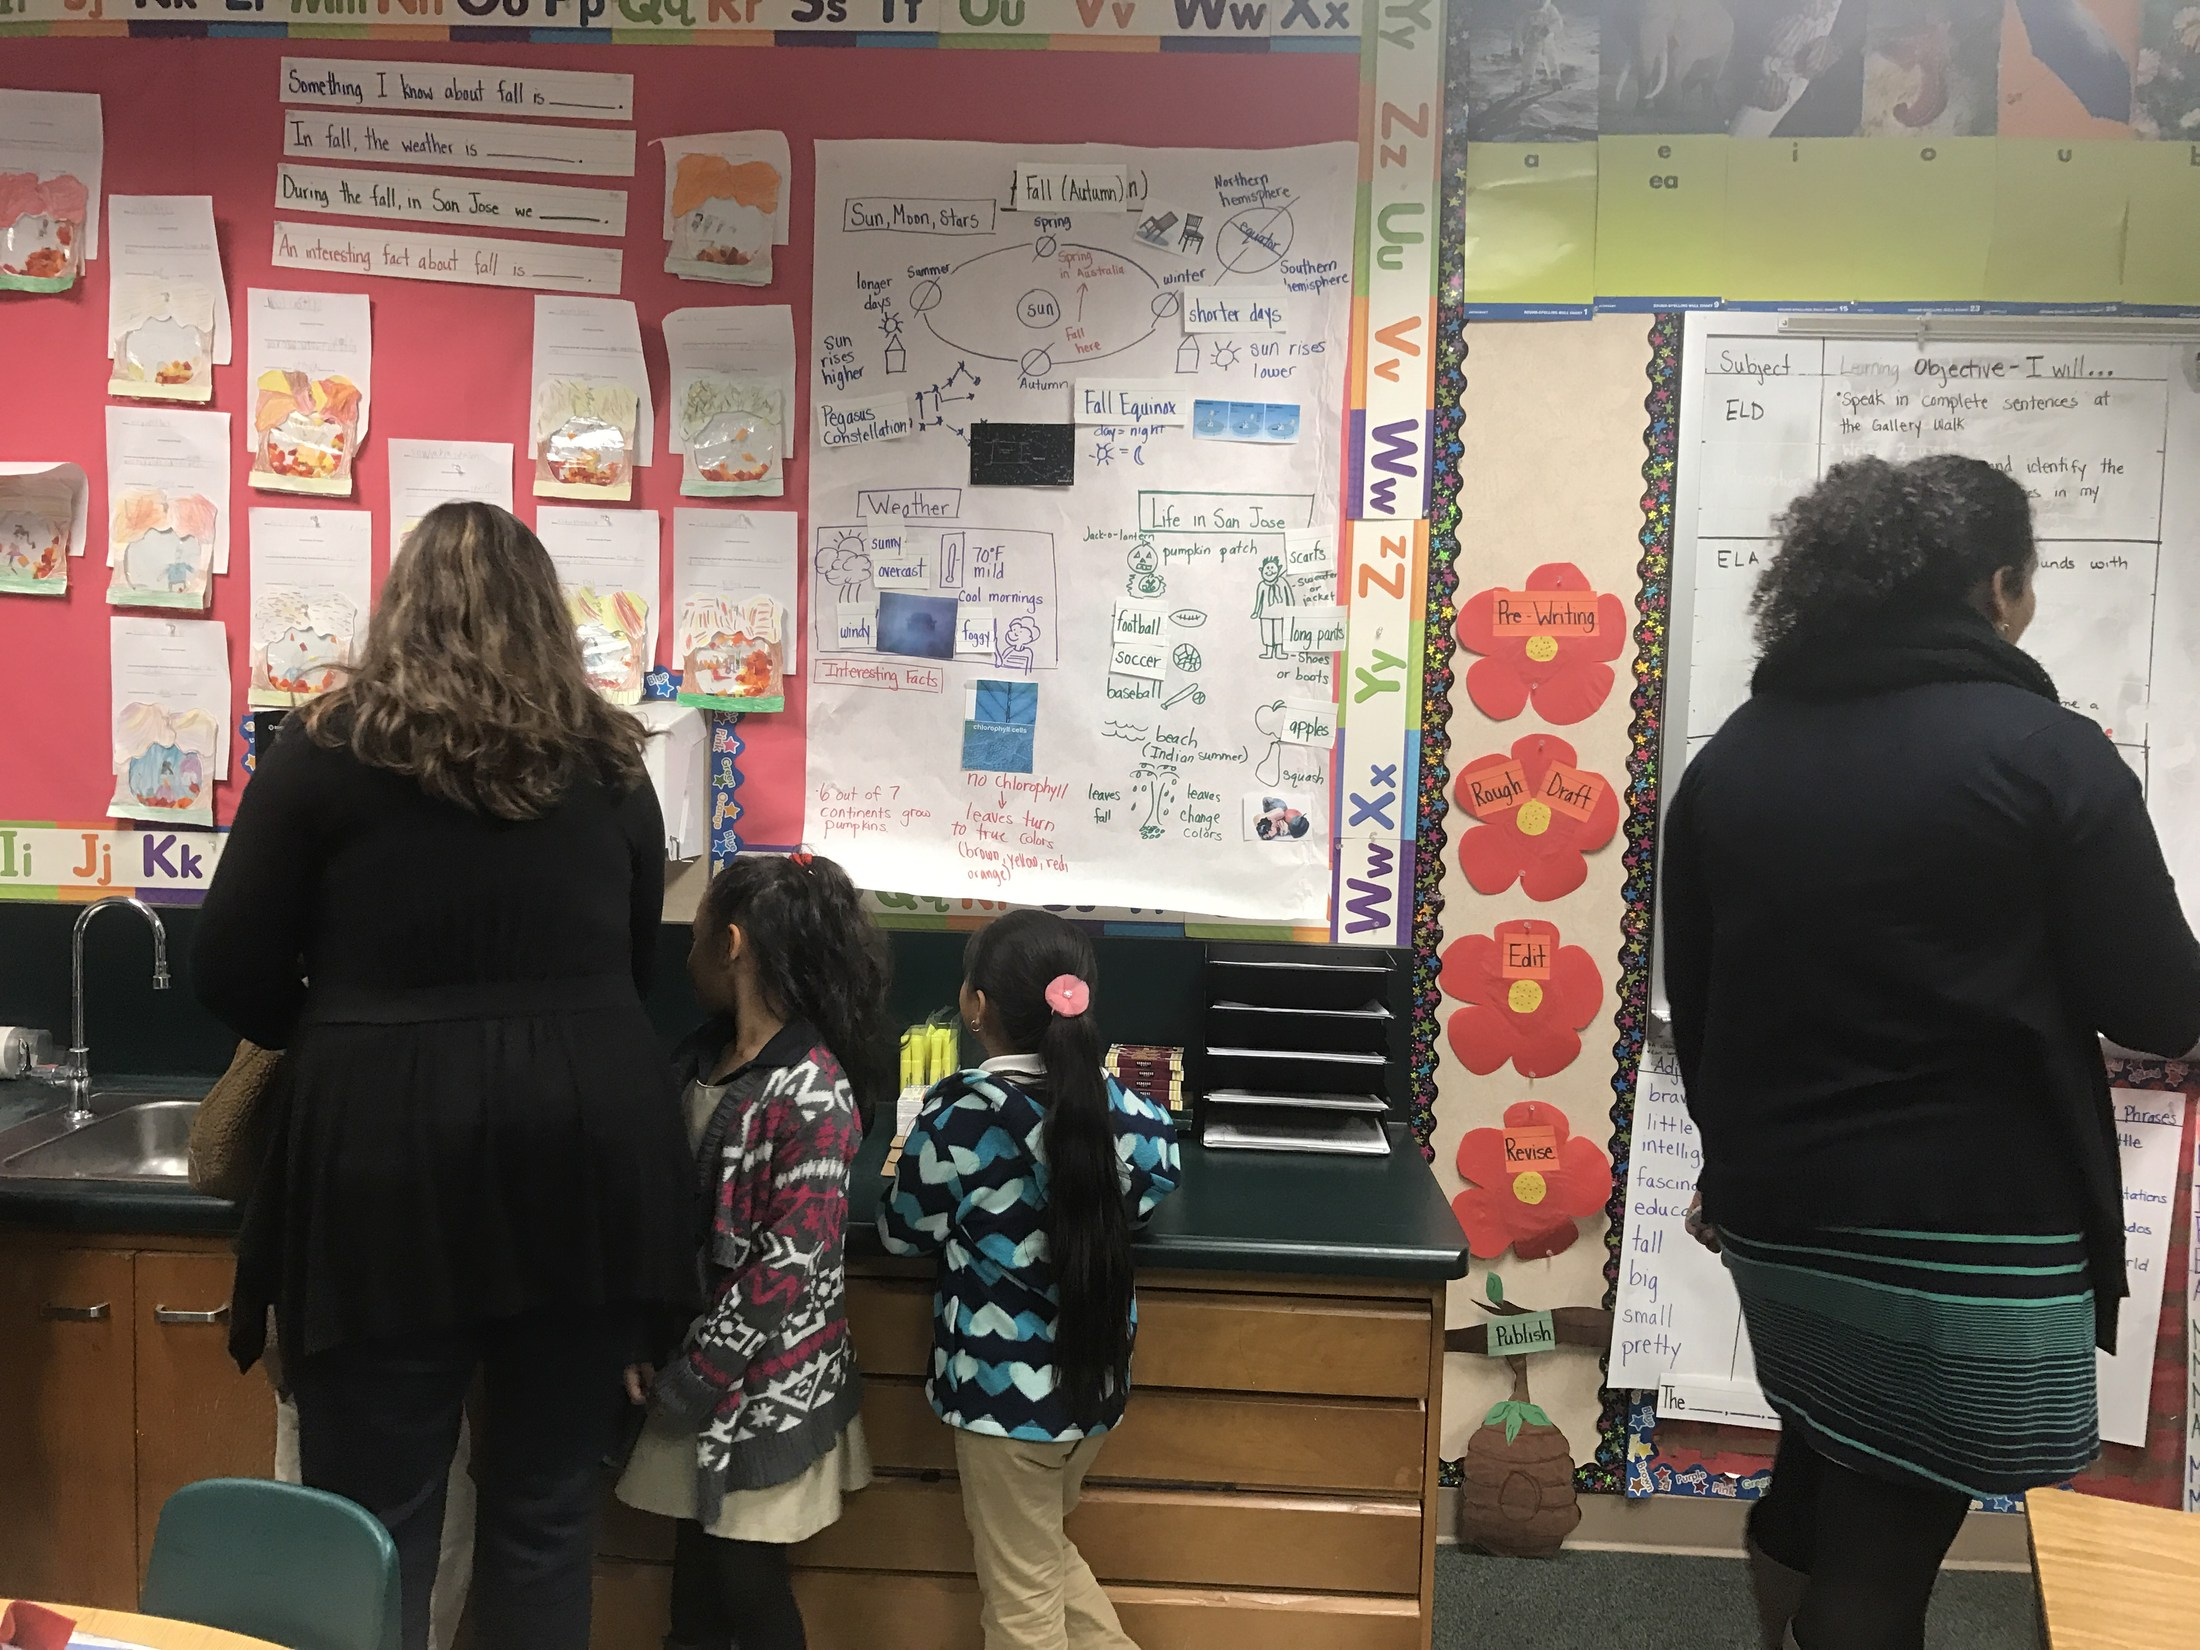 Mrs. Kimberly talks to students during a gallery walk.